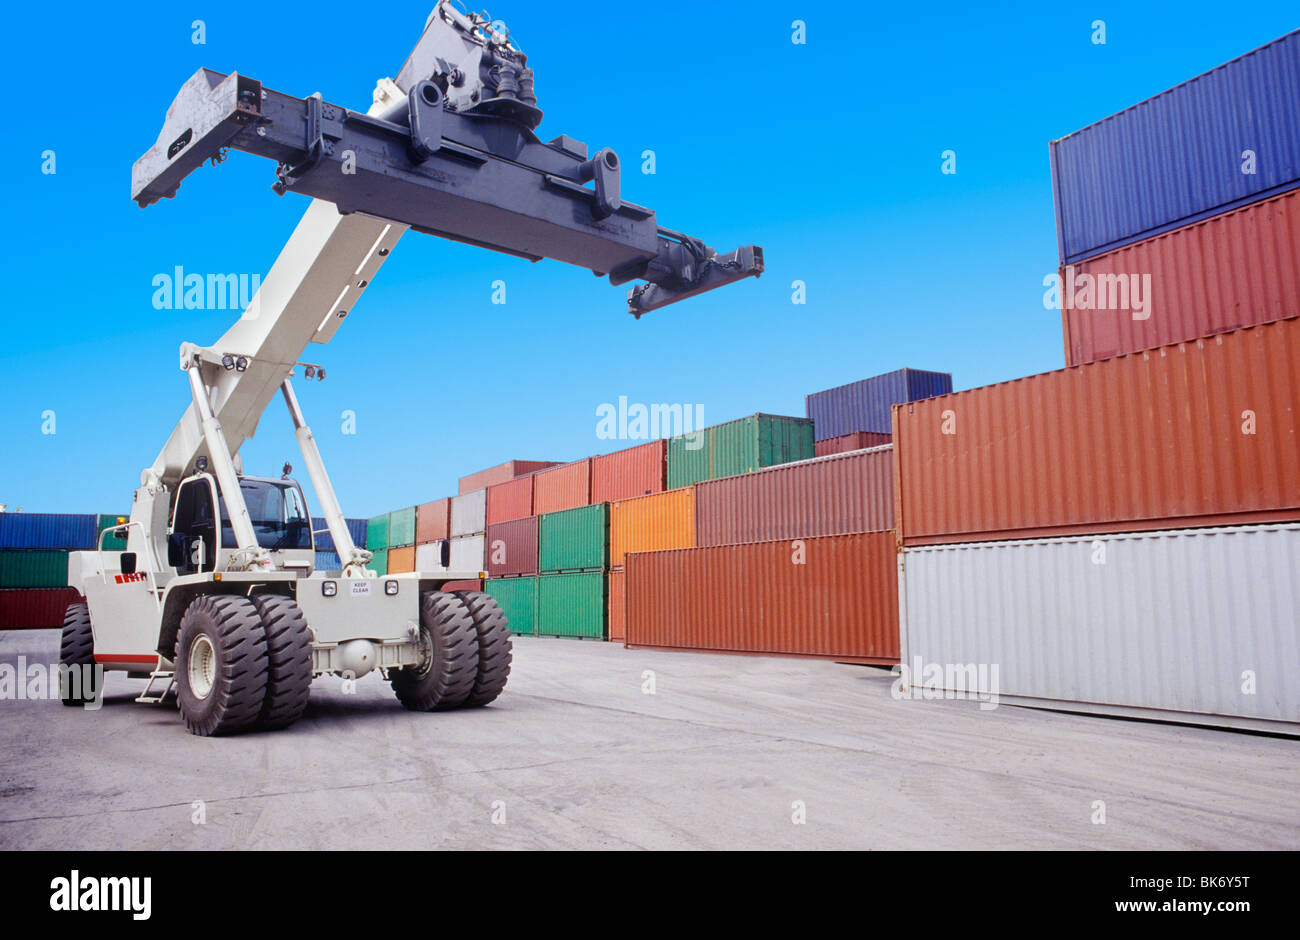 Heavy Lifter in a Shipping Yard. - Stock Image